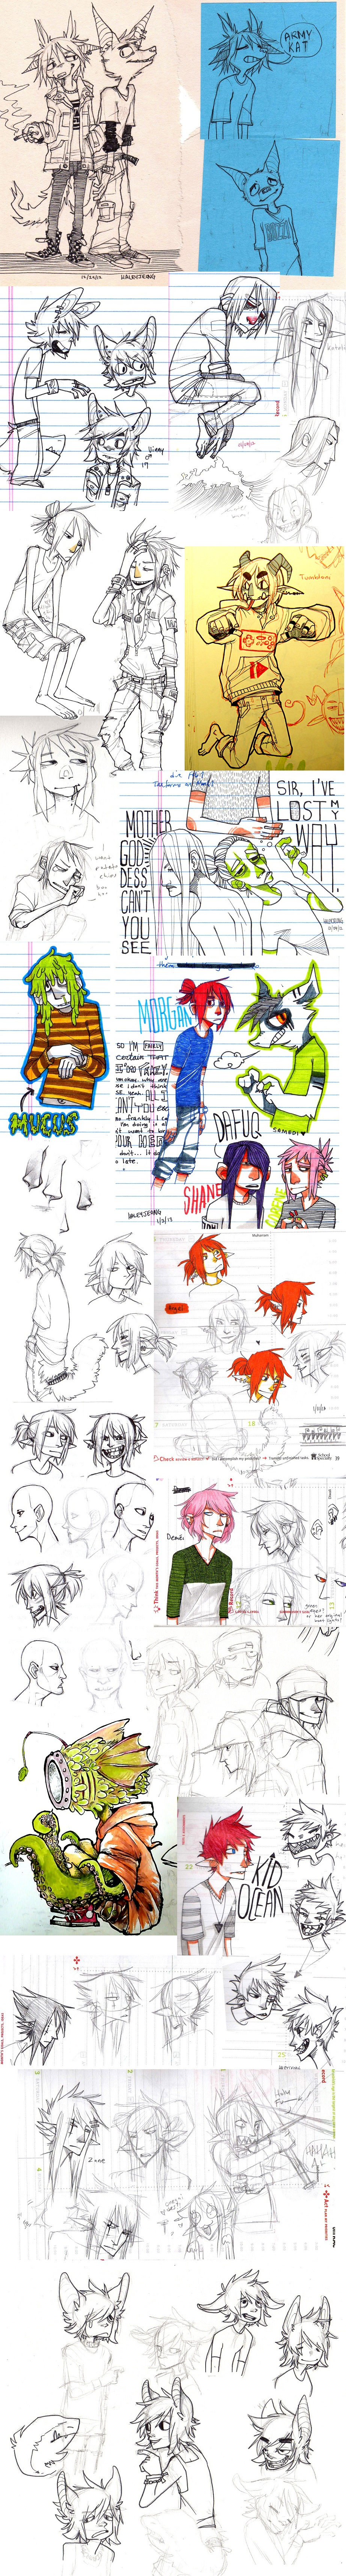 doodle dump 09 by HJeojeo